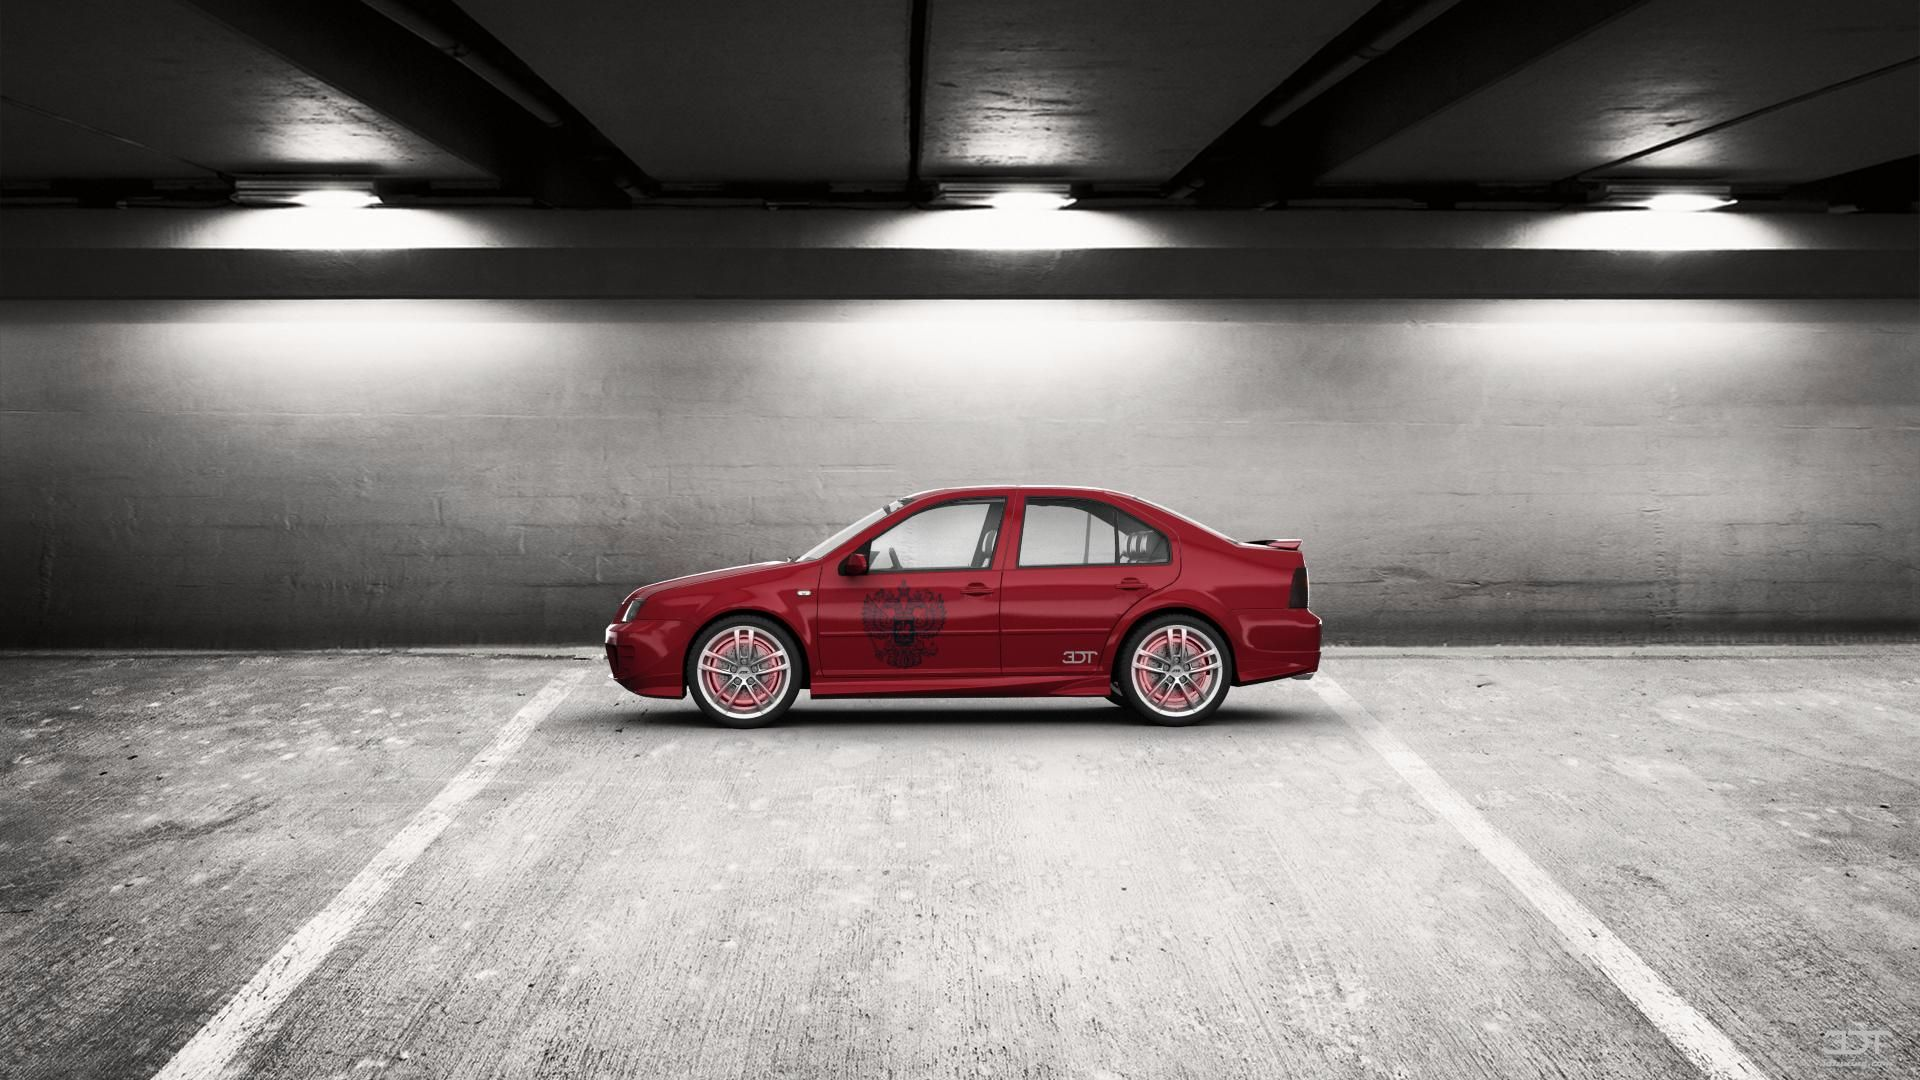 Checkout my tuning #Volkswagen #BoraVR6 2003 at 3DTuning #3dtuning #tuning